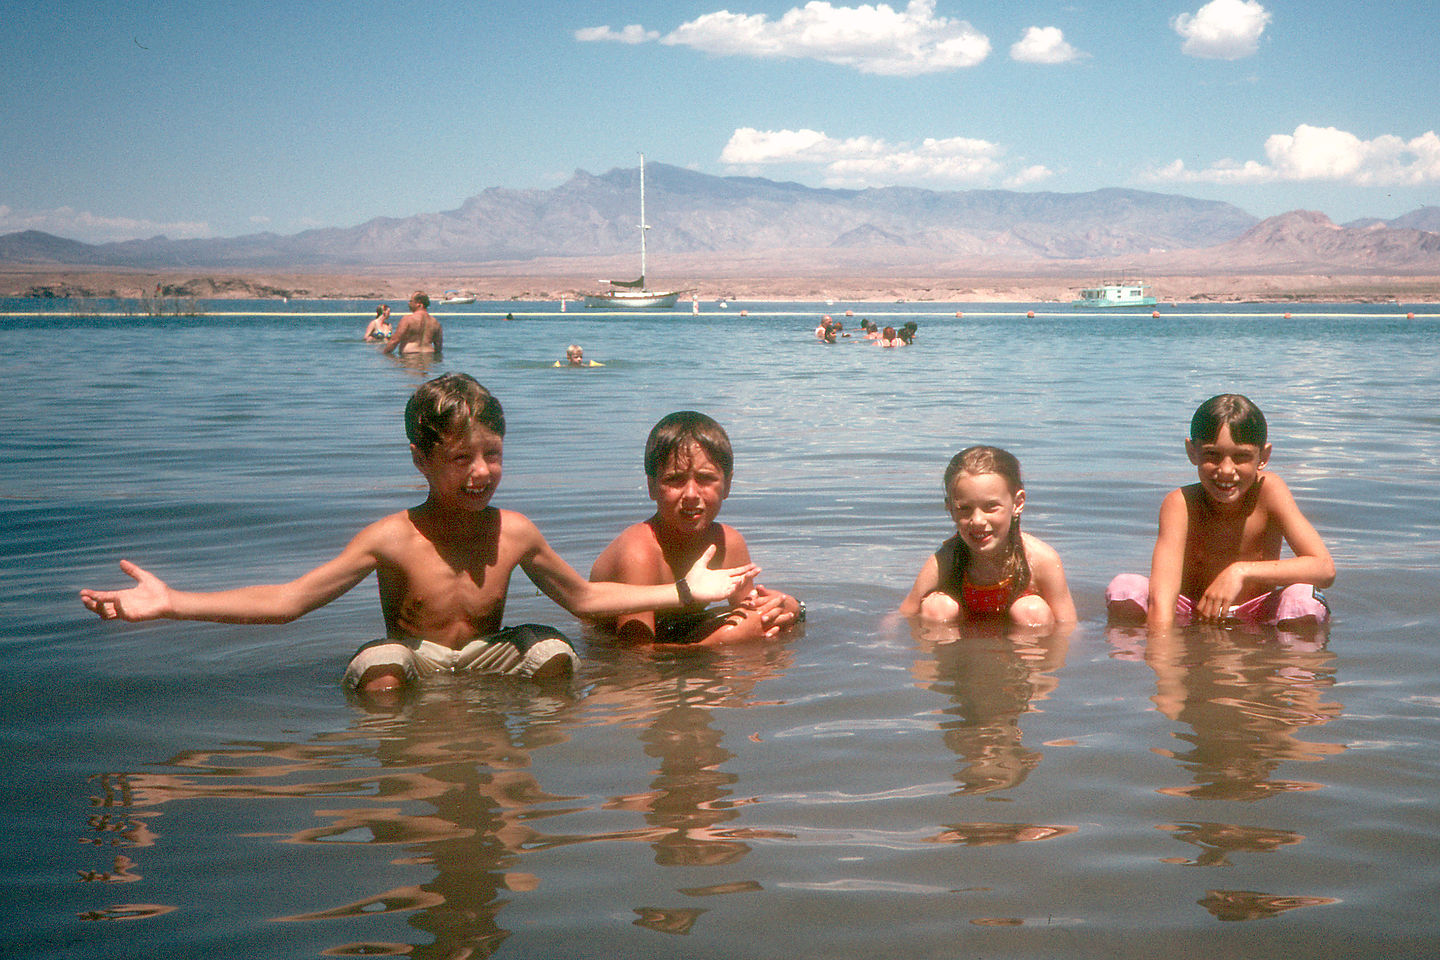 Kids cooling off in Lake Mead